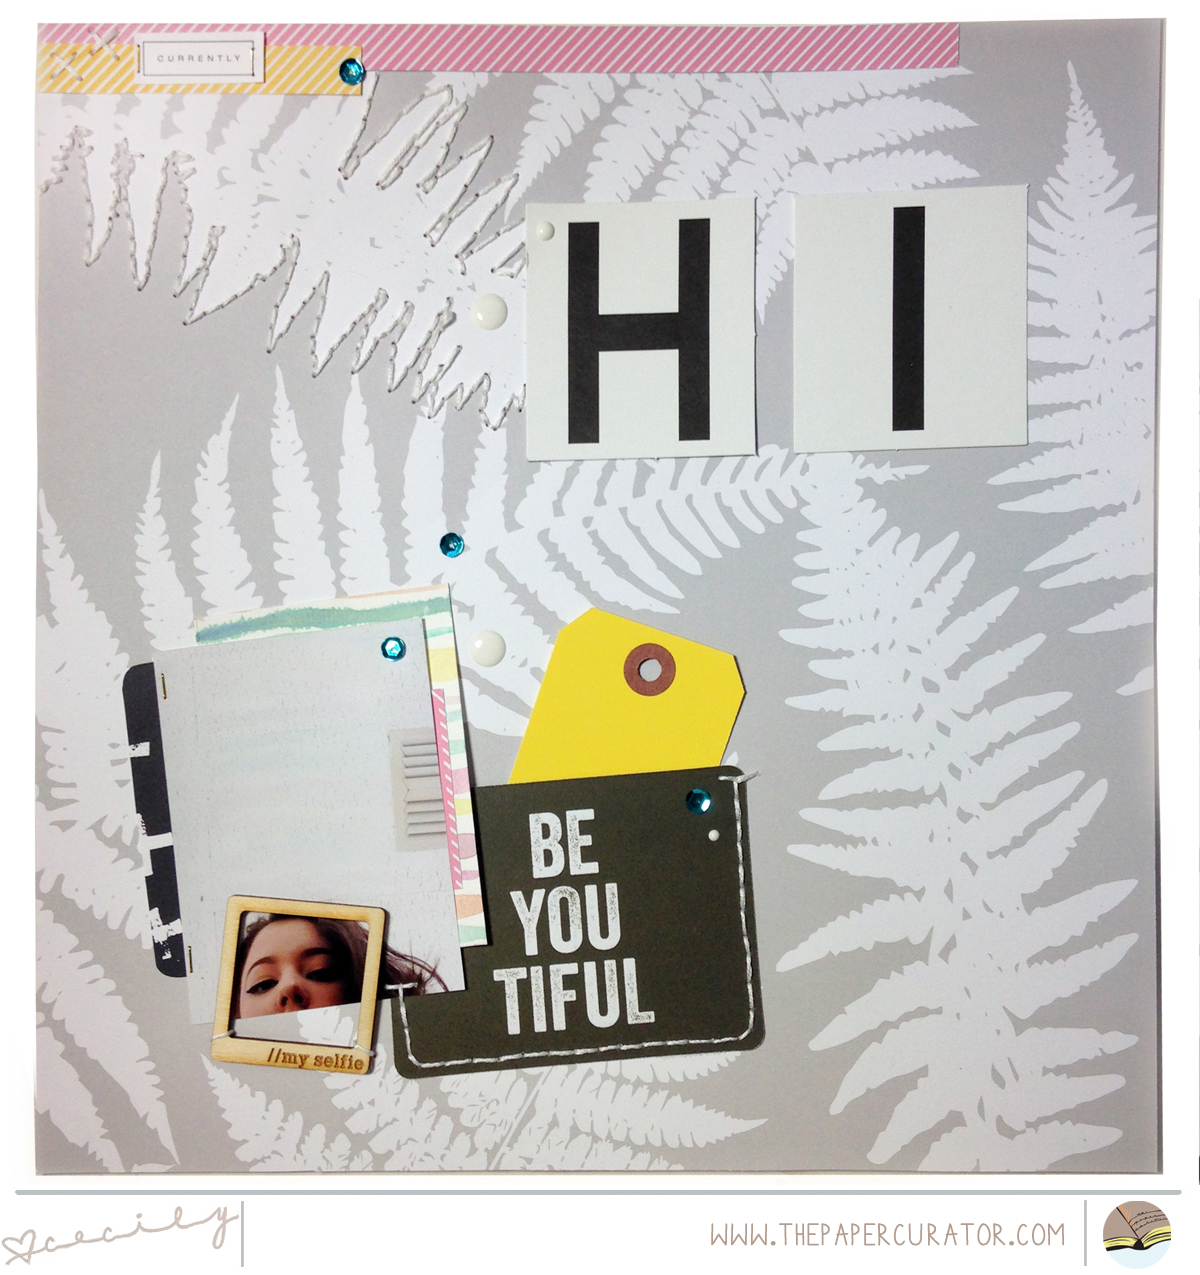 TIME SAVING TIPS WITH 'BE YOUTIFUL' SCRAPBOOK LAYOUT | THE PAPER CURATOR